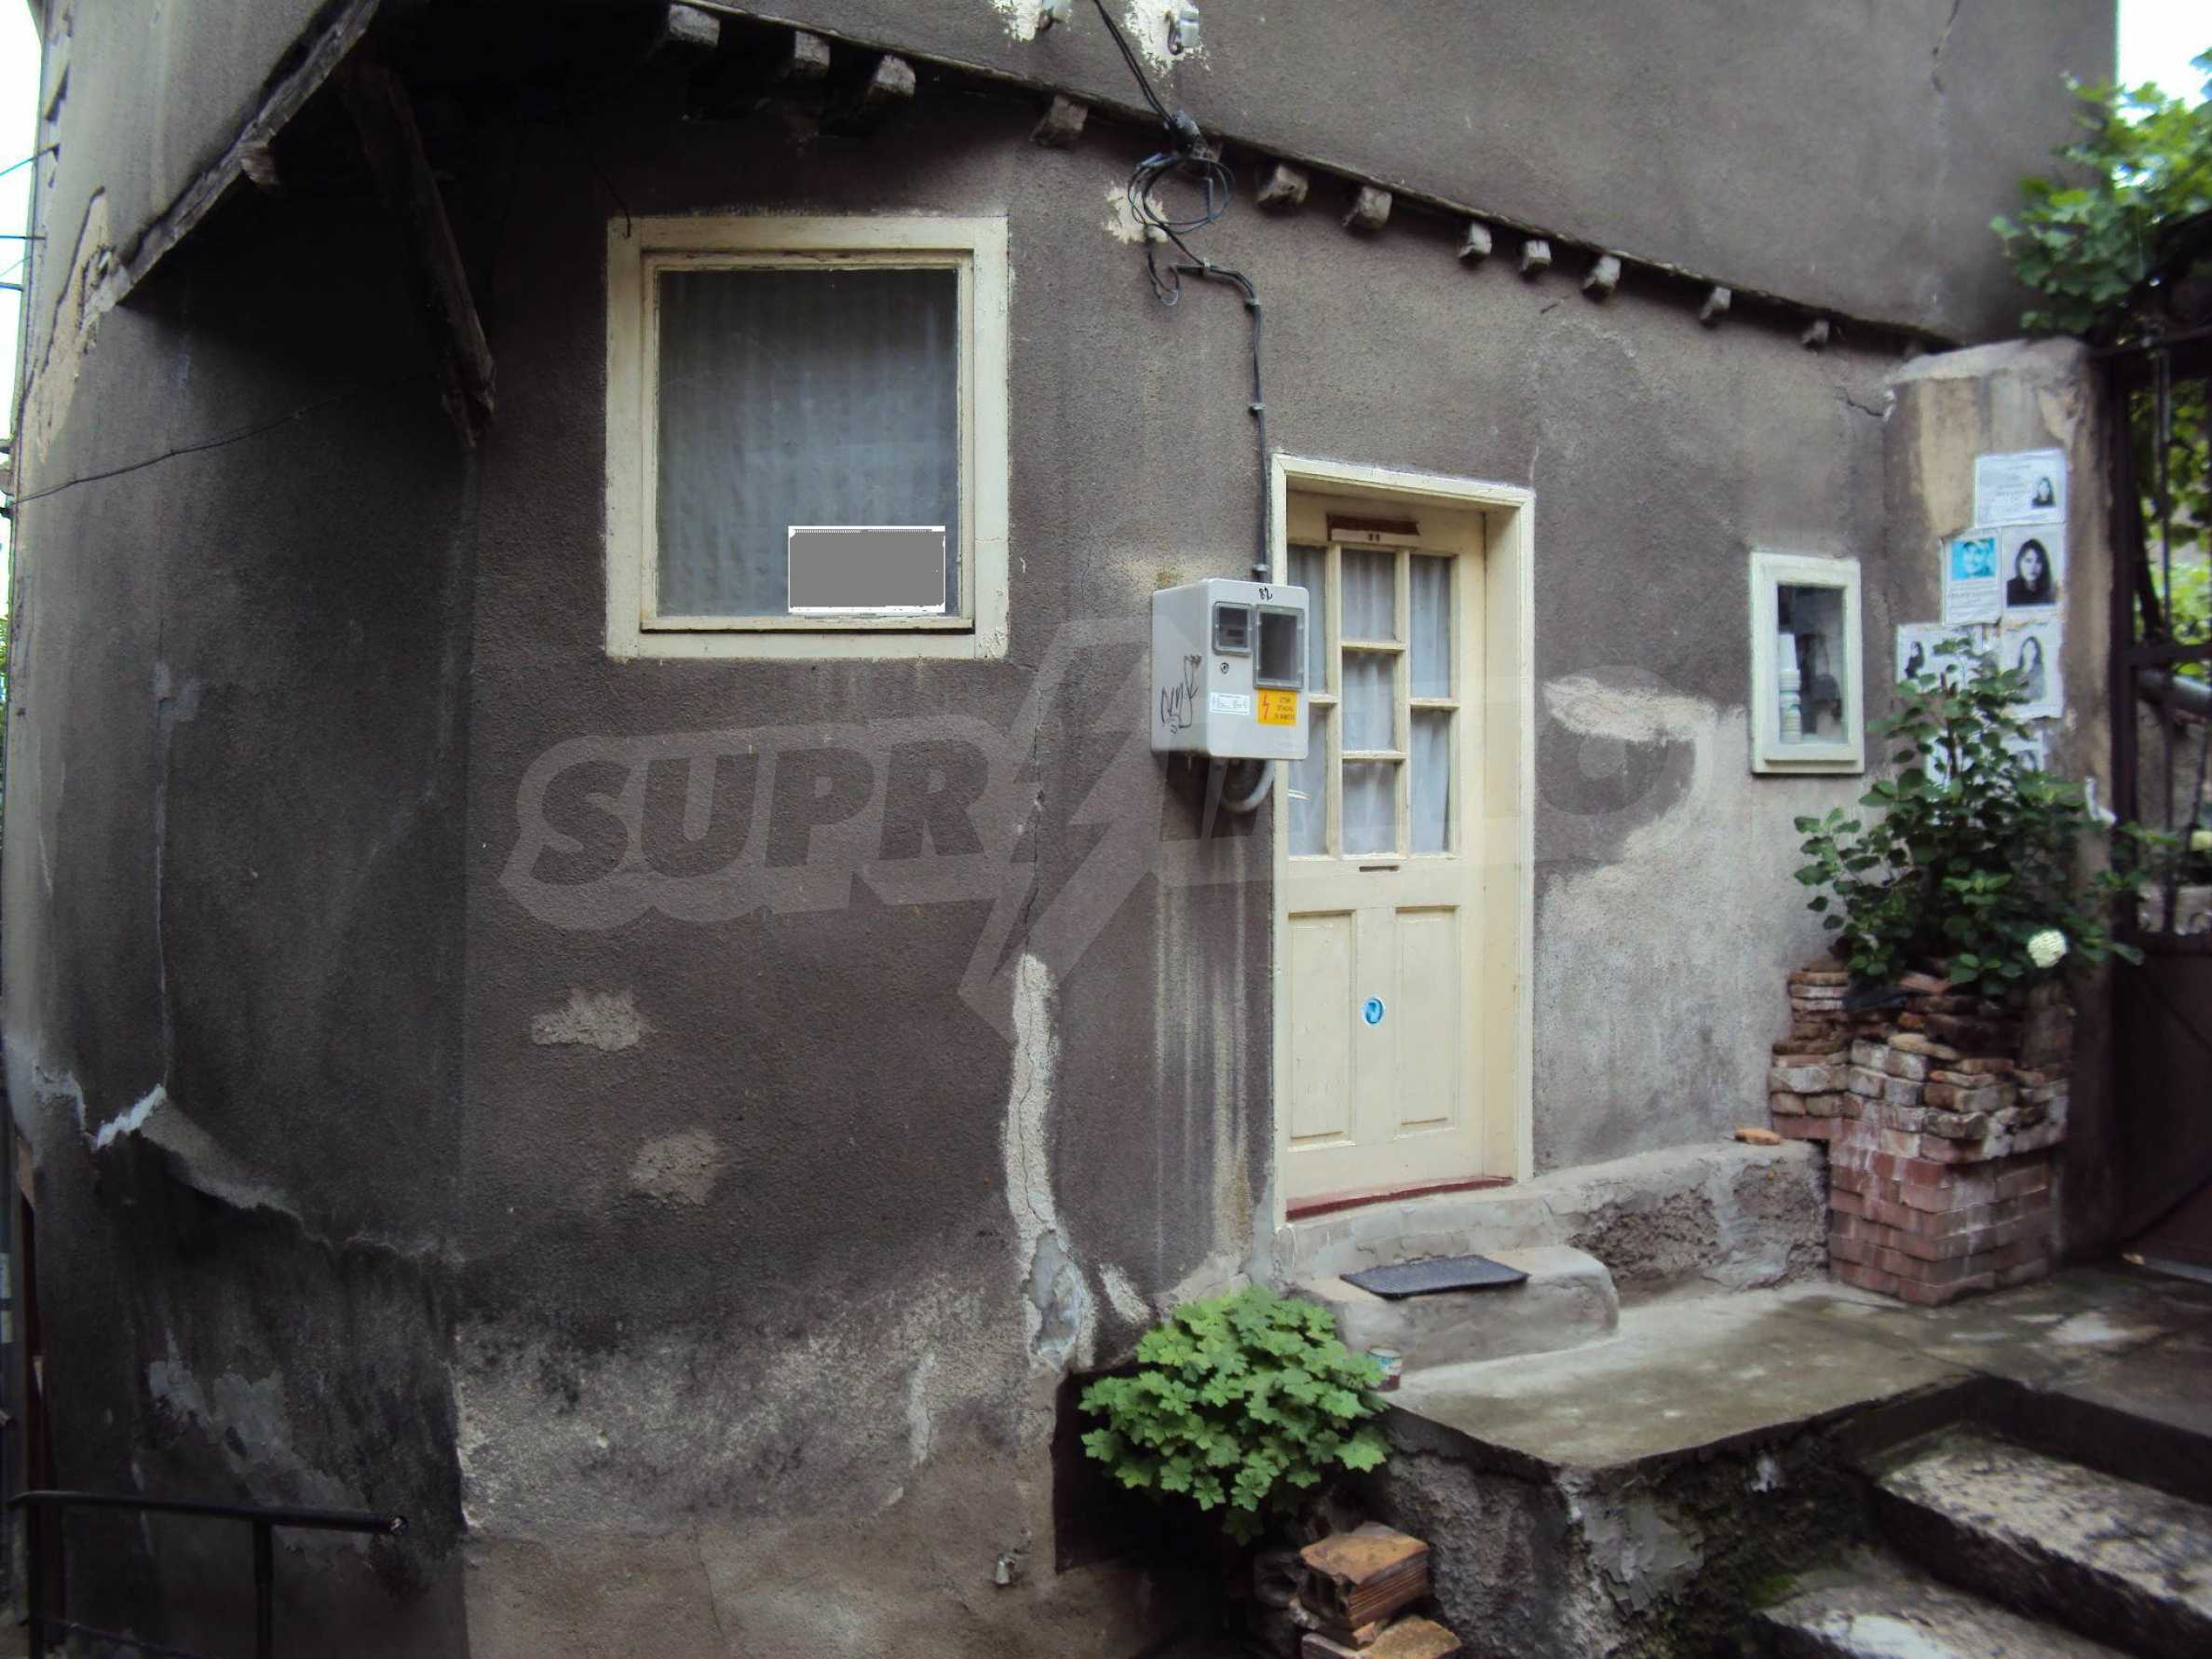 Traditional, spacious house located in the old part of Veliko Tarnovo 41